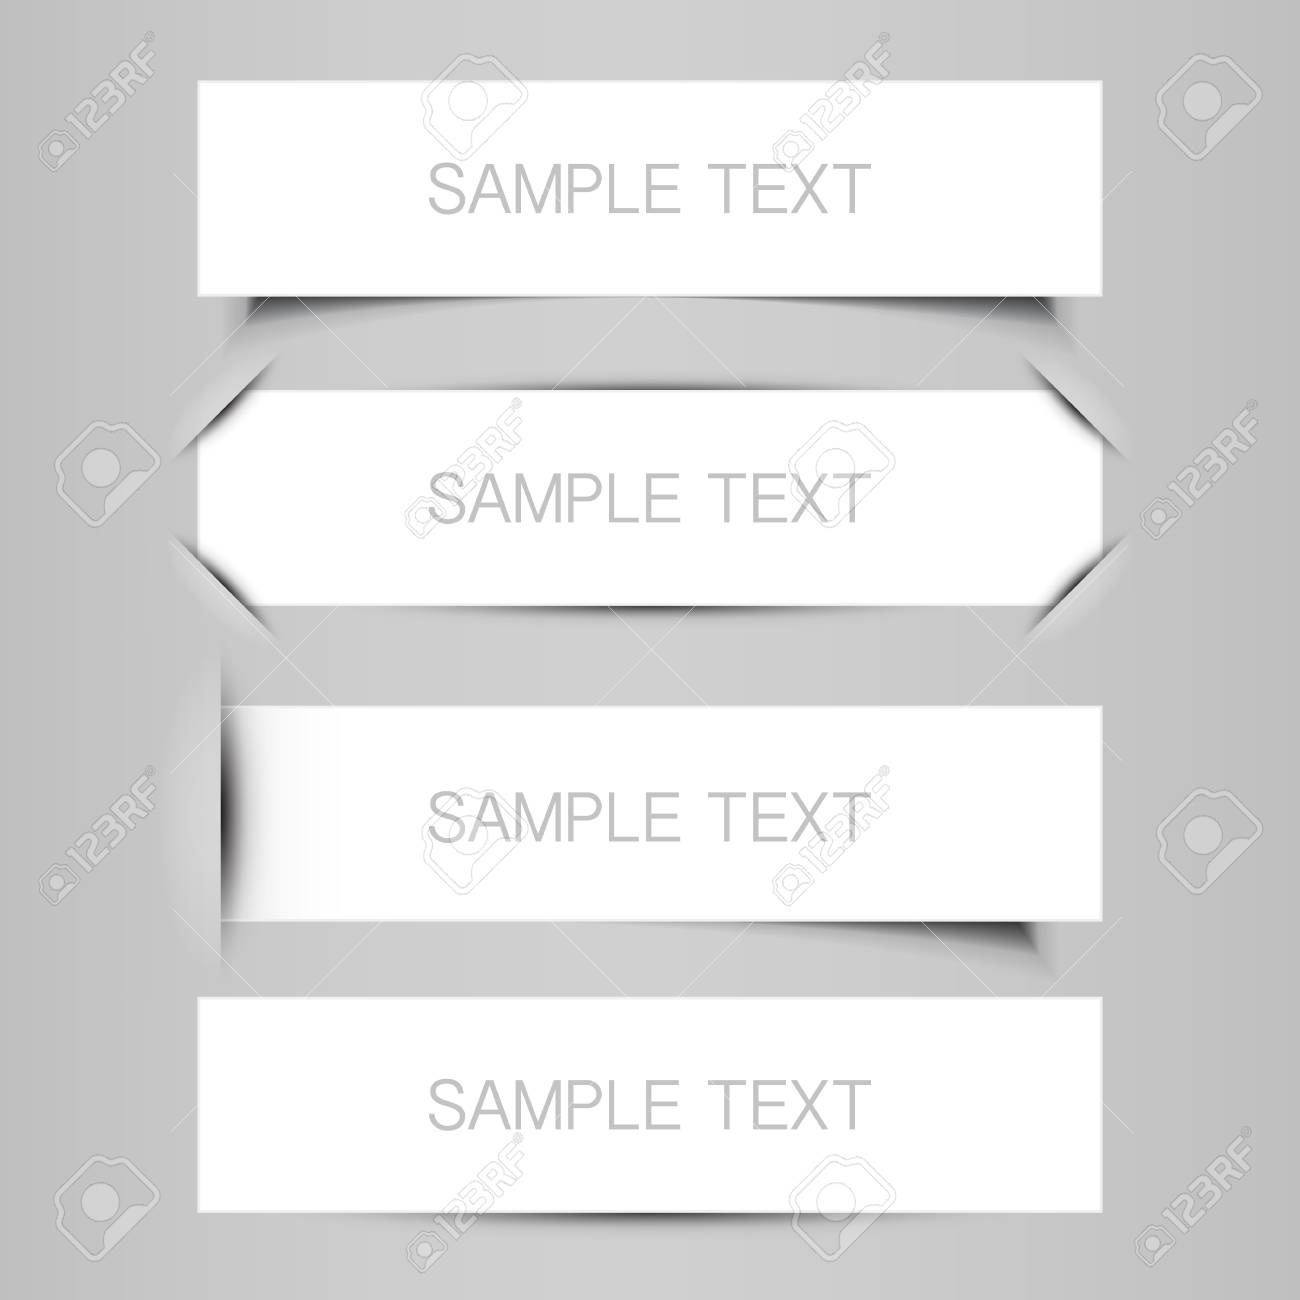 Tag, Label or Banner Designs Stock Vector - 17016721